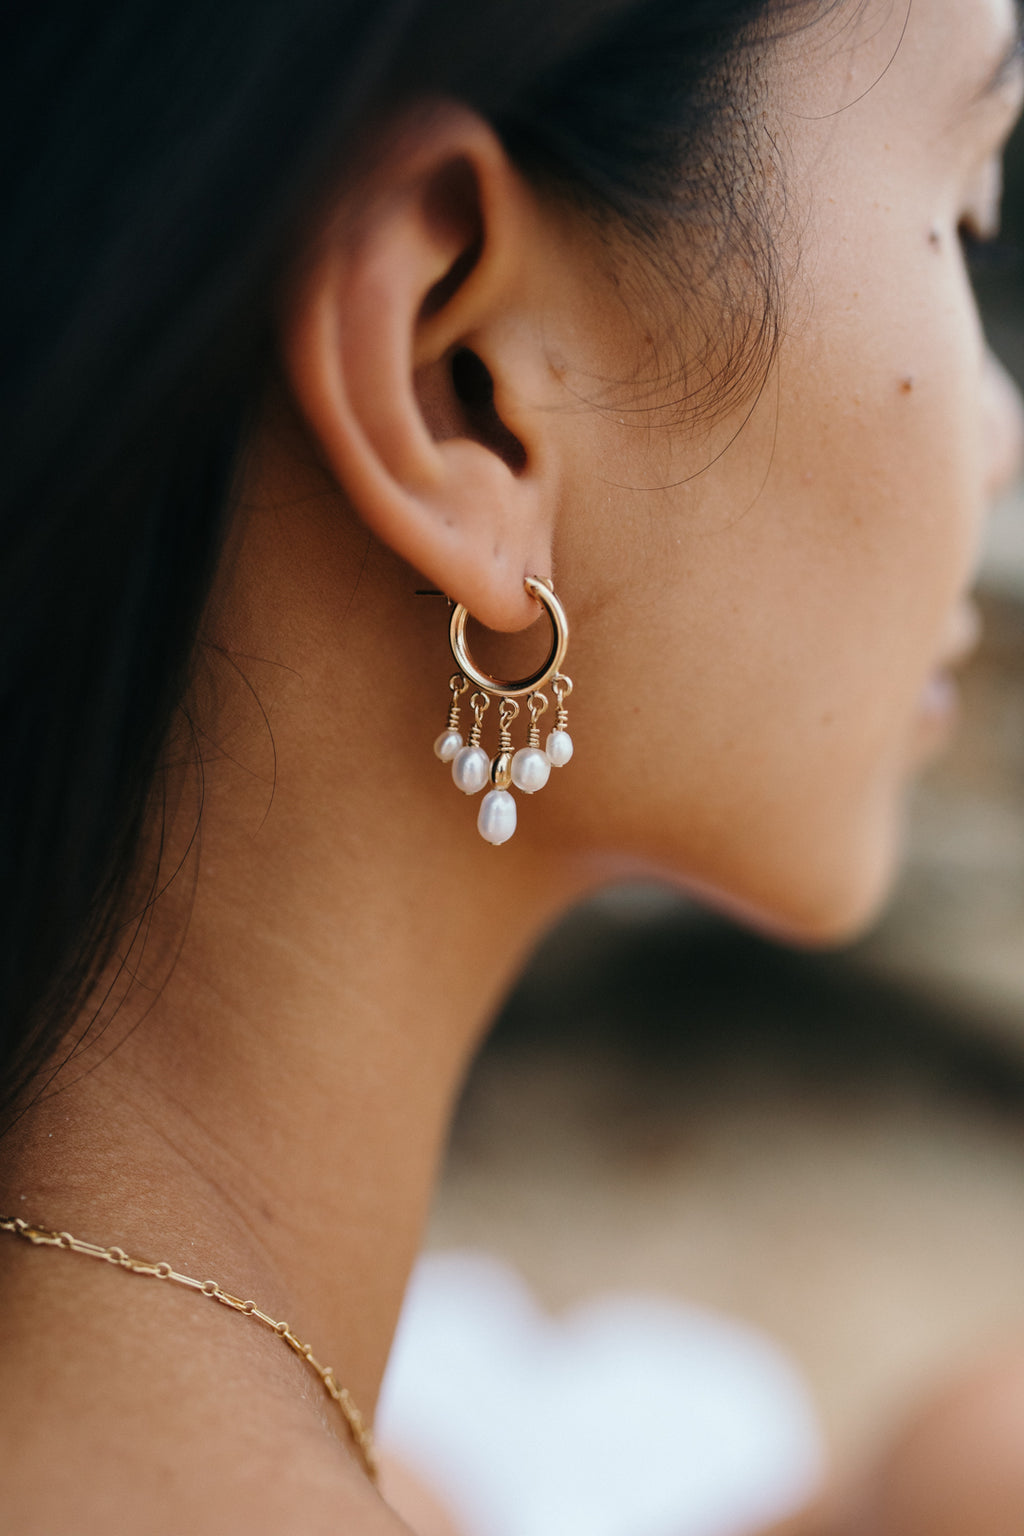 Model wearing the Tara Earrings - 14k gold-filled mini hoops with freshwater pearls, by Elvis et moi